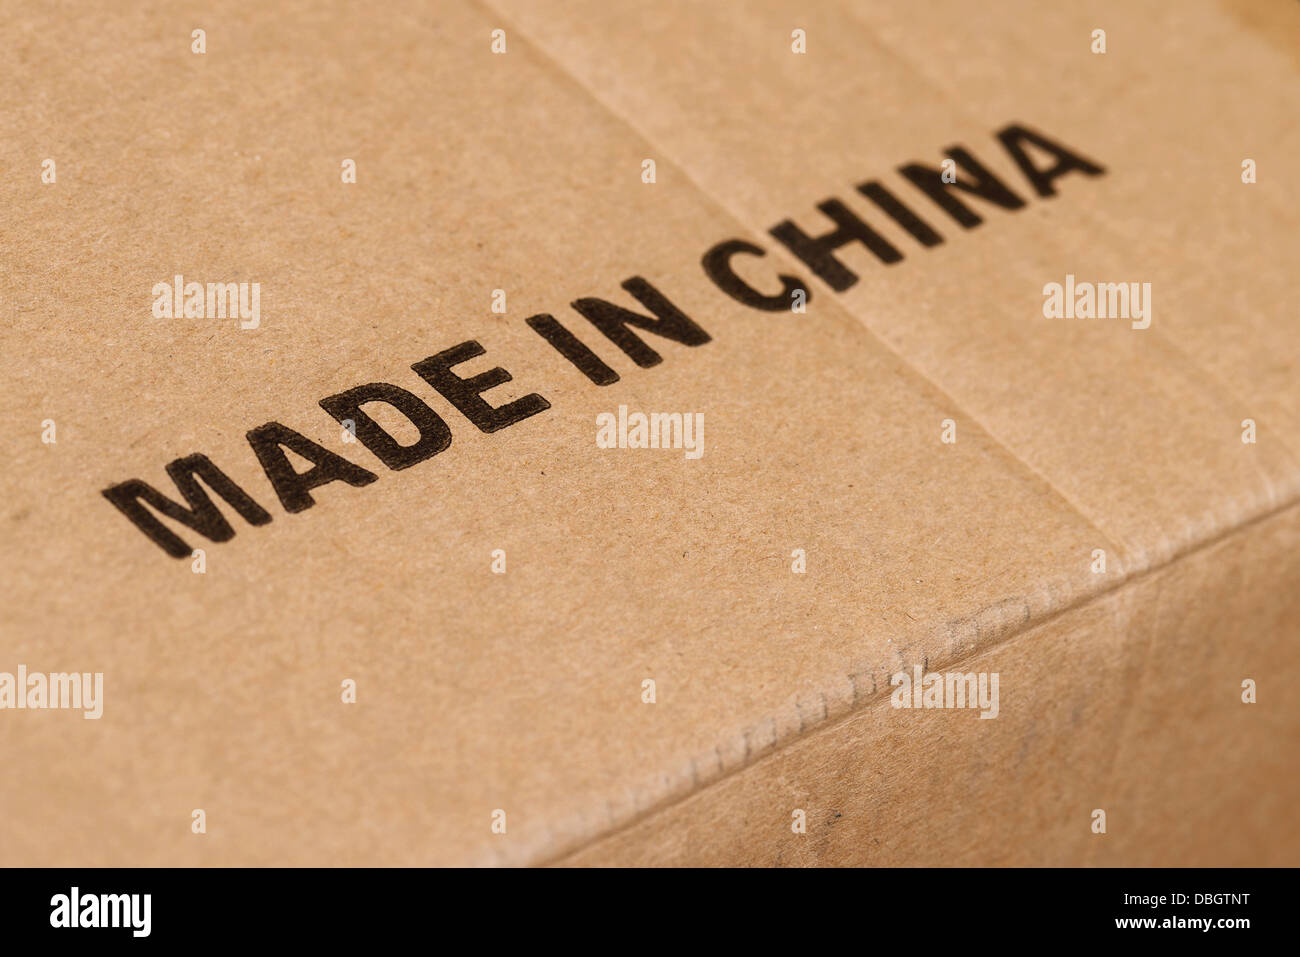 Made in China printed on a cardboard box - Stock Image